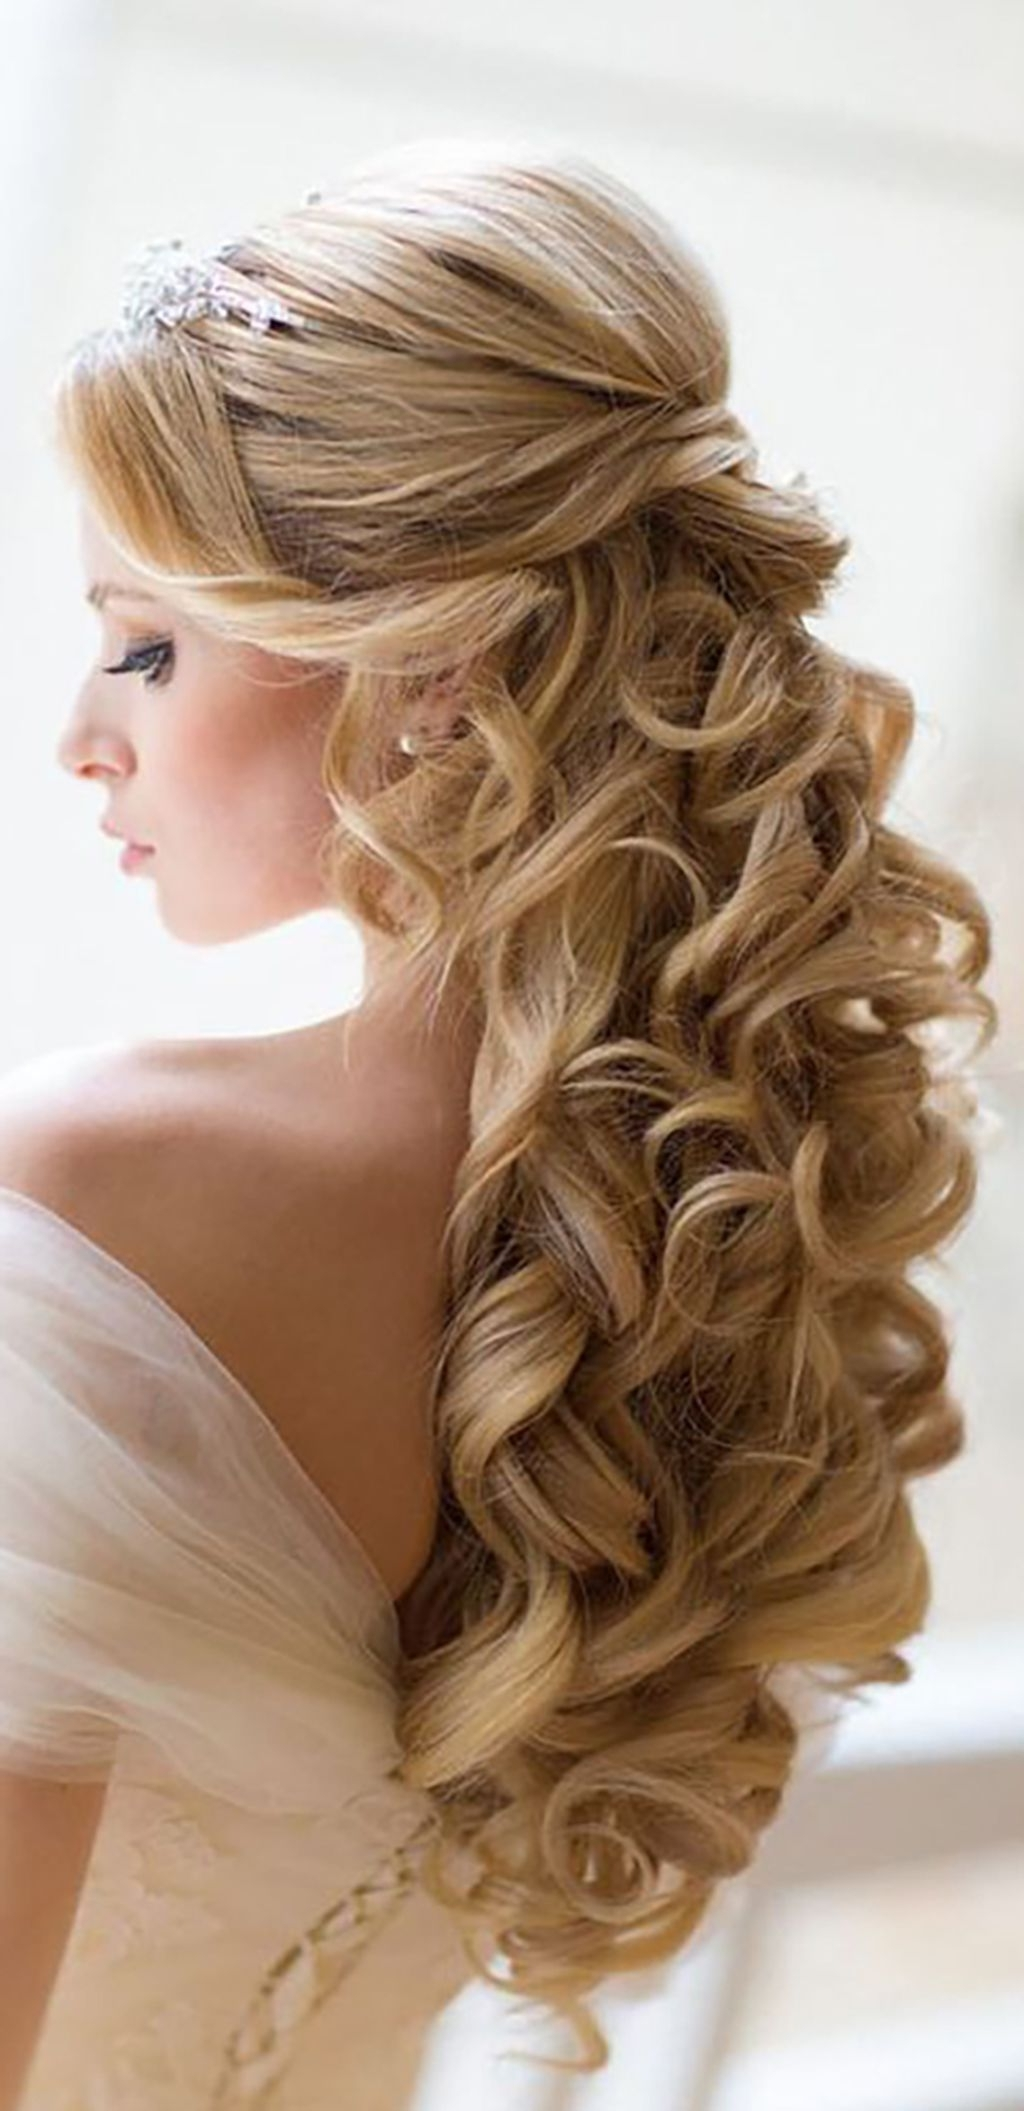 Awesome 86 Classy Wedding Hairstyle Ideas For Long Hair Women Http Inside Popular Wedding Hairstyles For Long Blonde Hair (View 2 of 15)